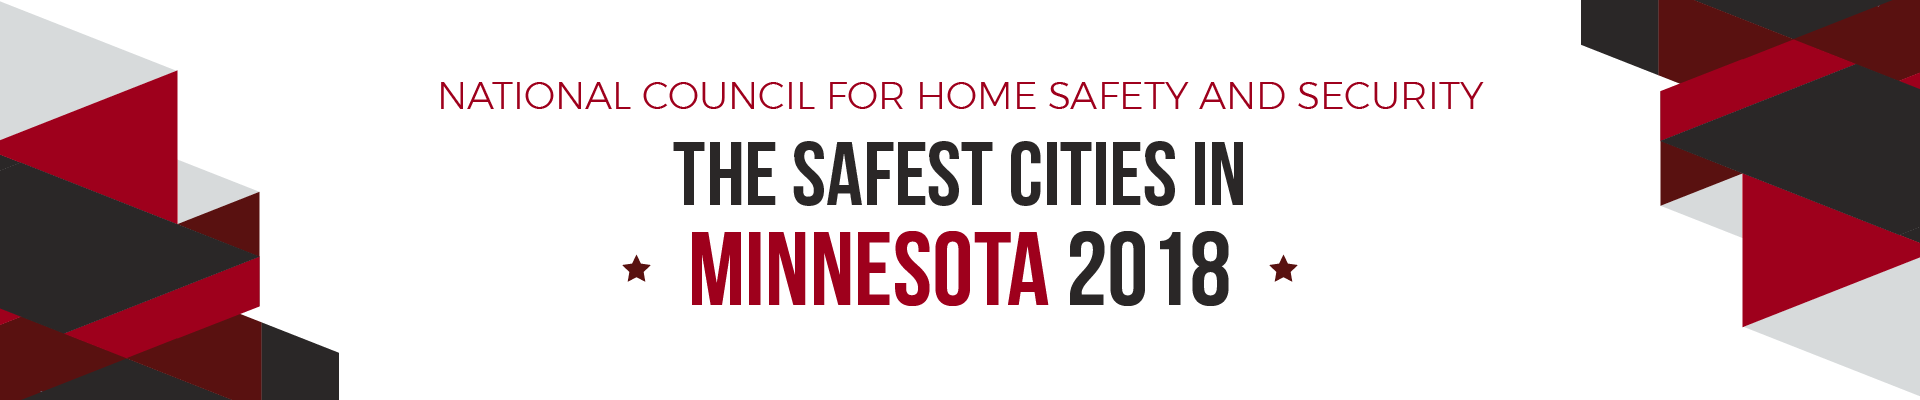 minnesota safe cities 2018